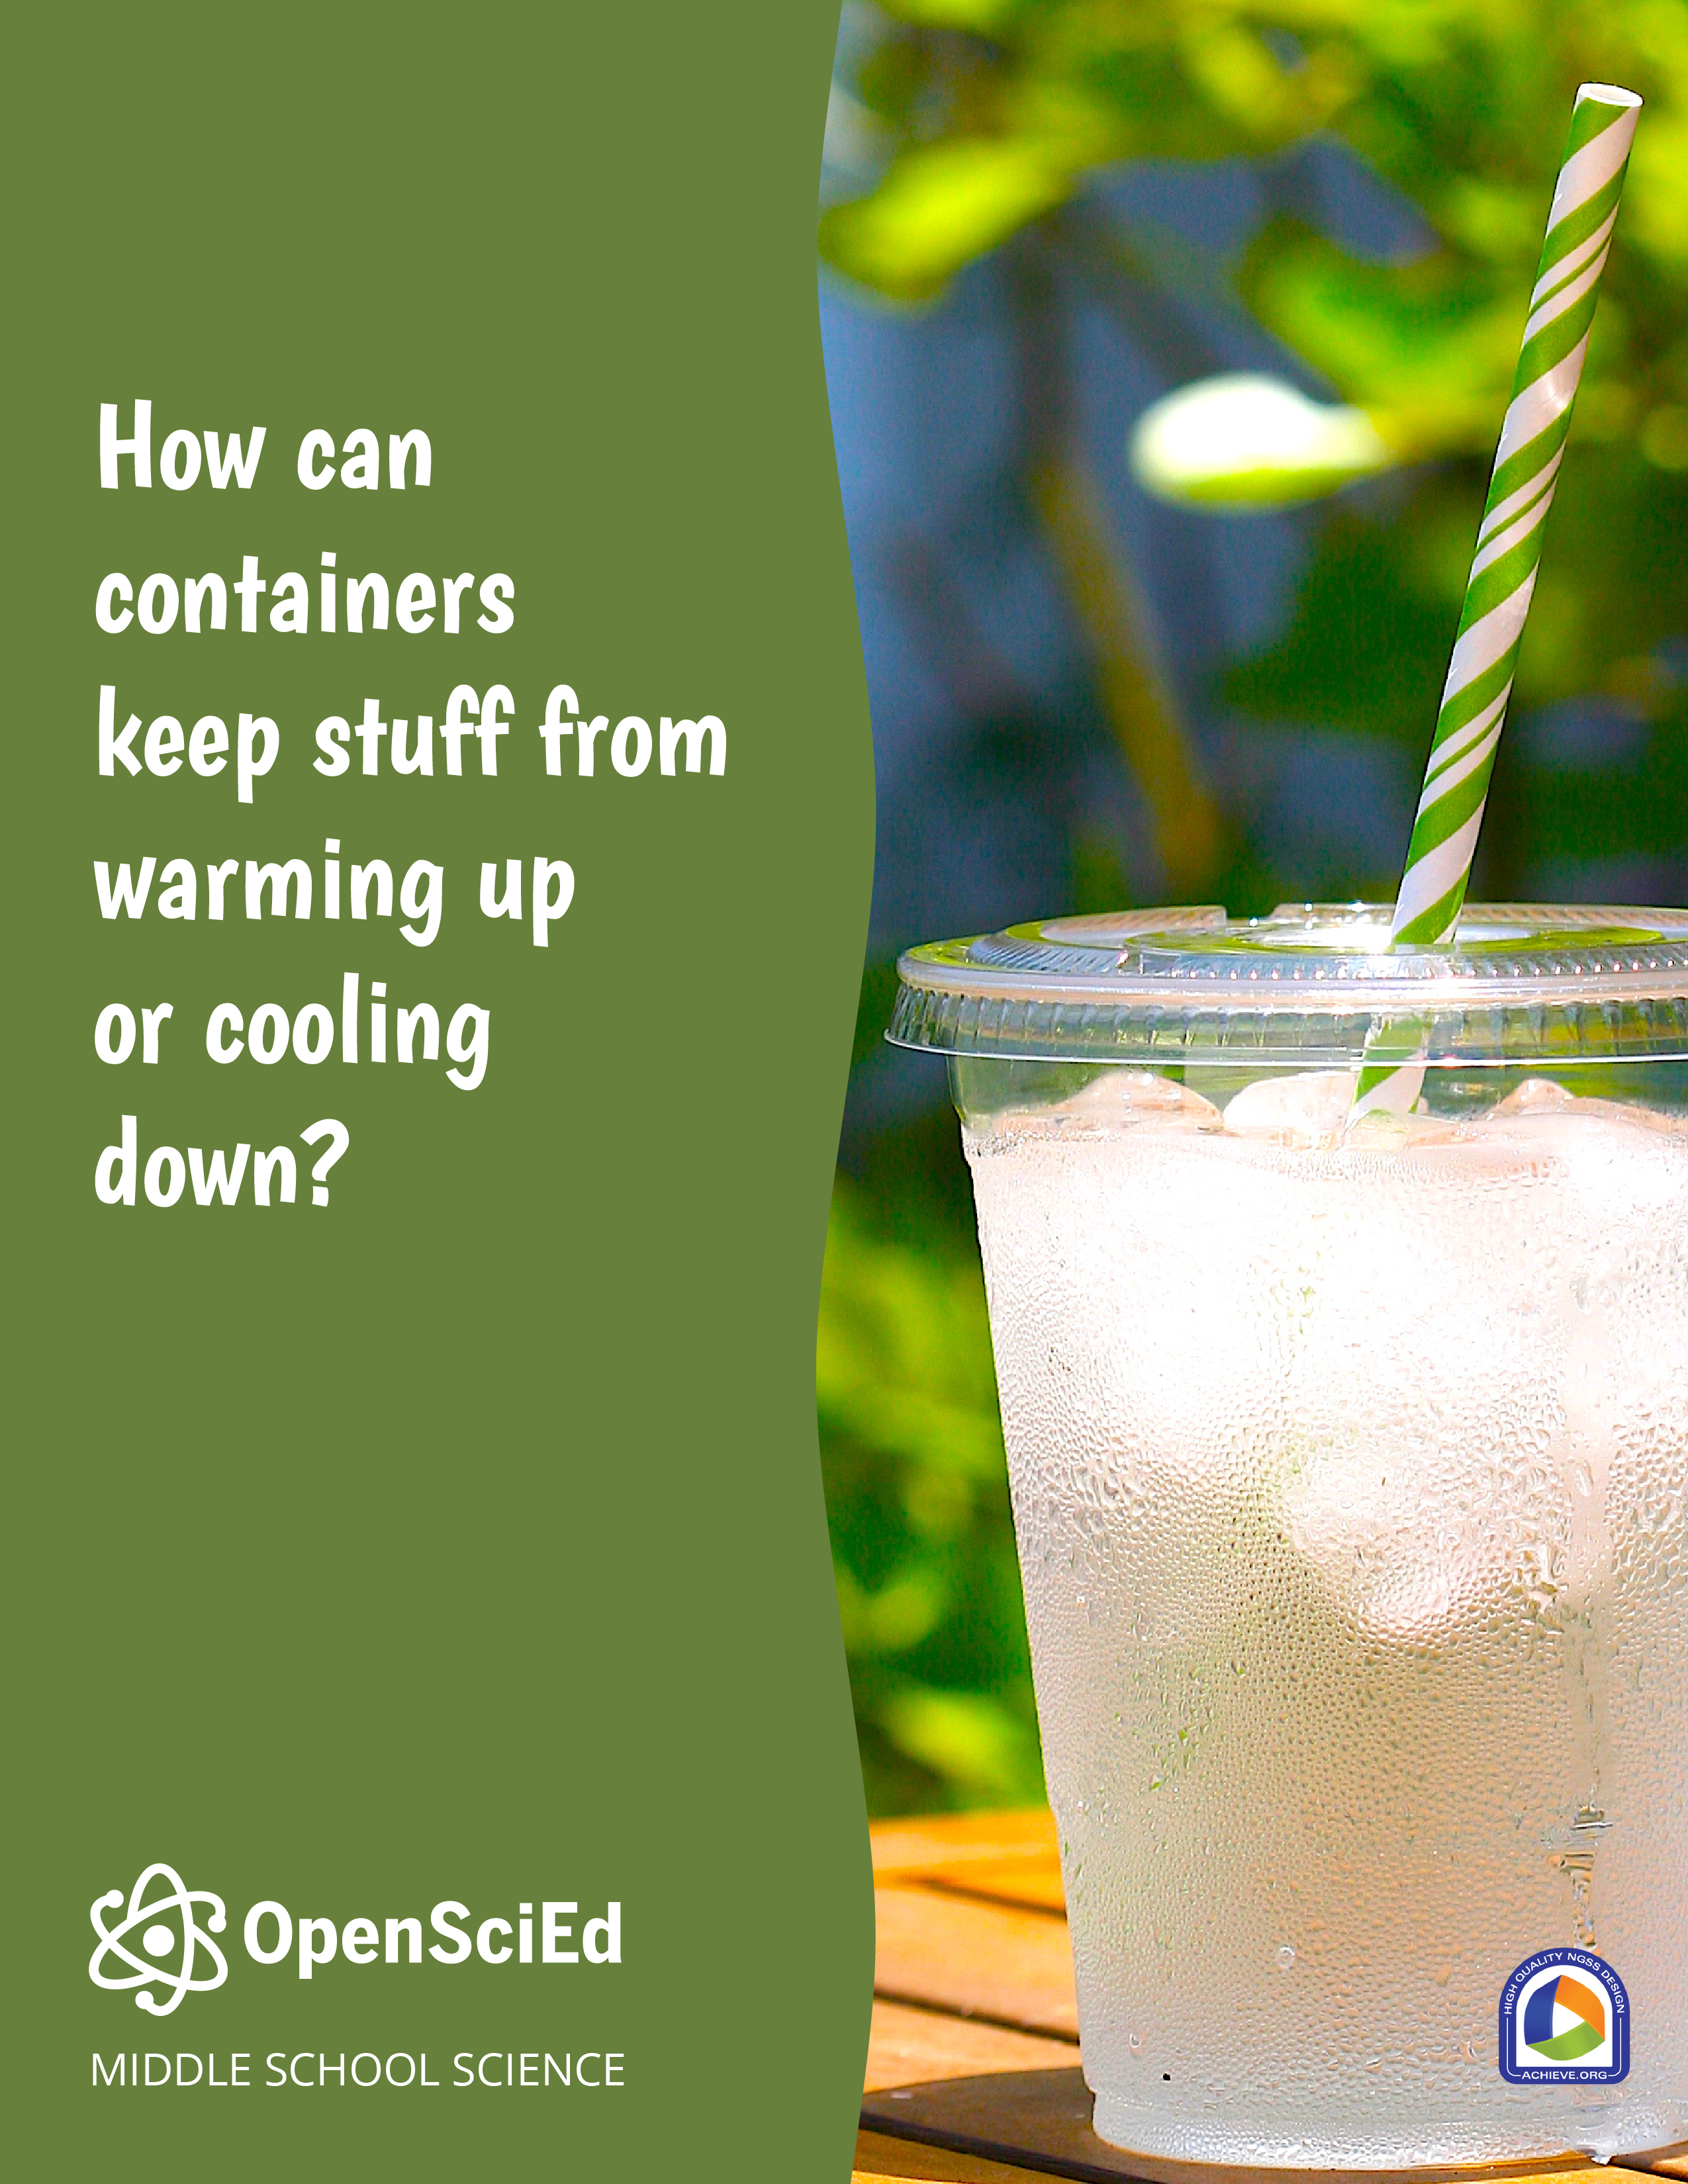 OpenSciEd Unit 6.2: How can containers keep stuff from warming up or cooling down? Student Edition